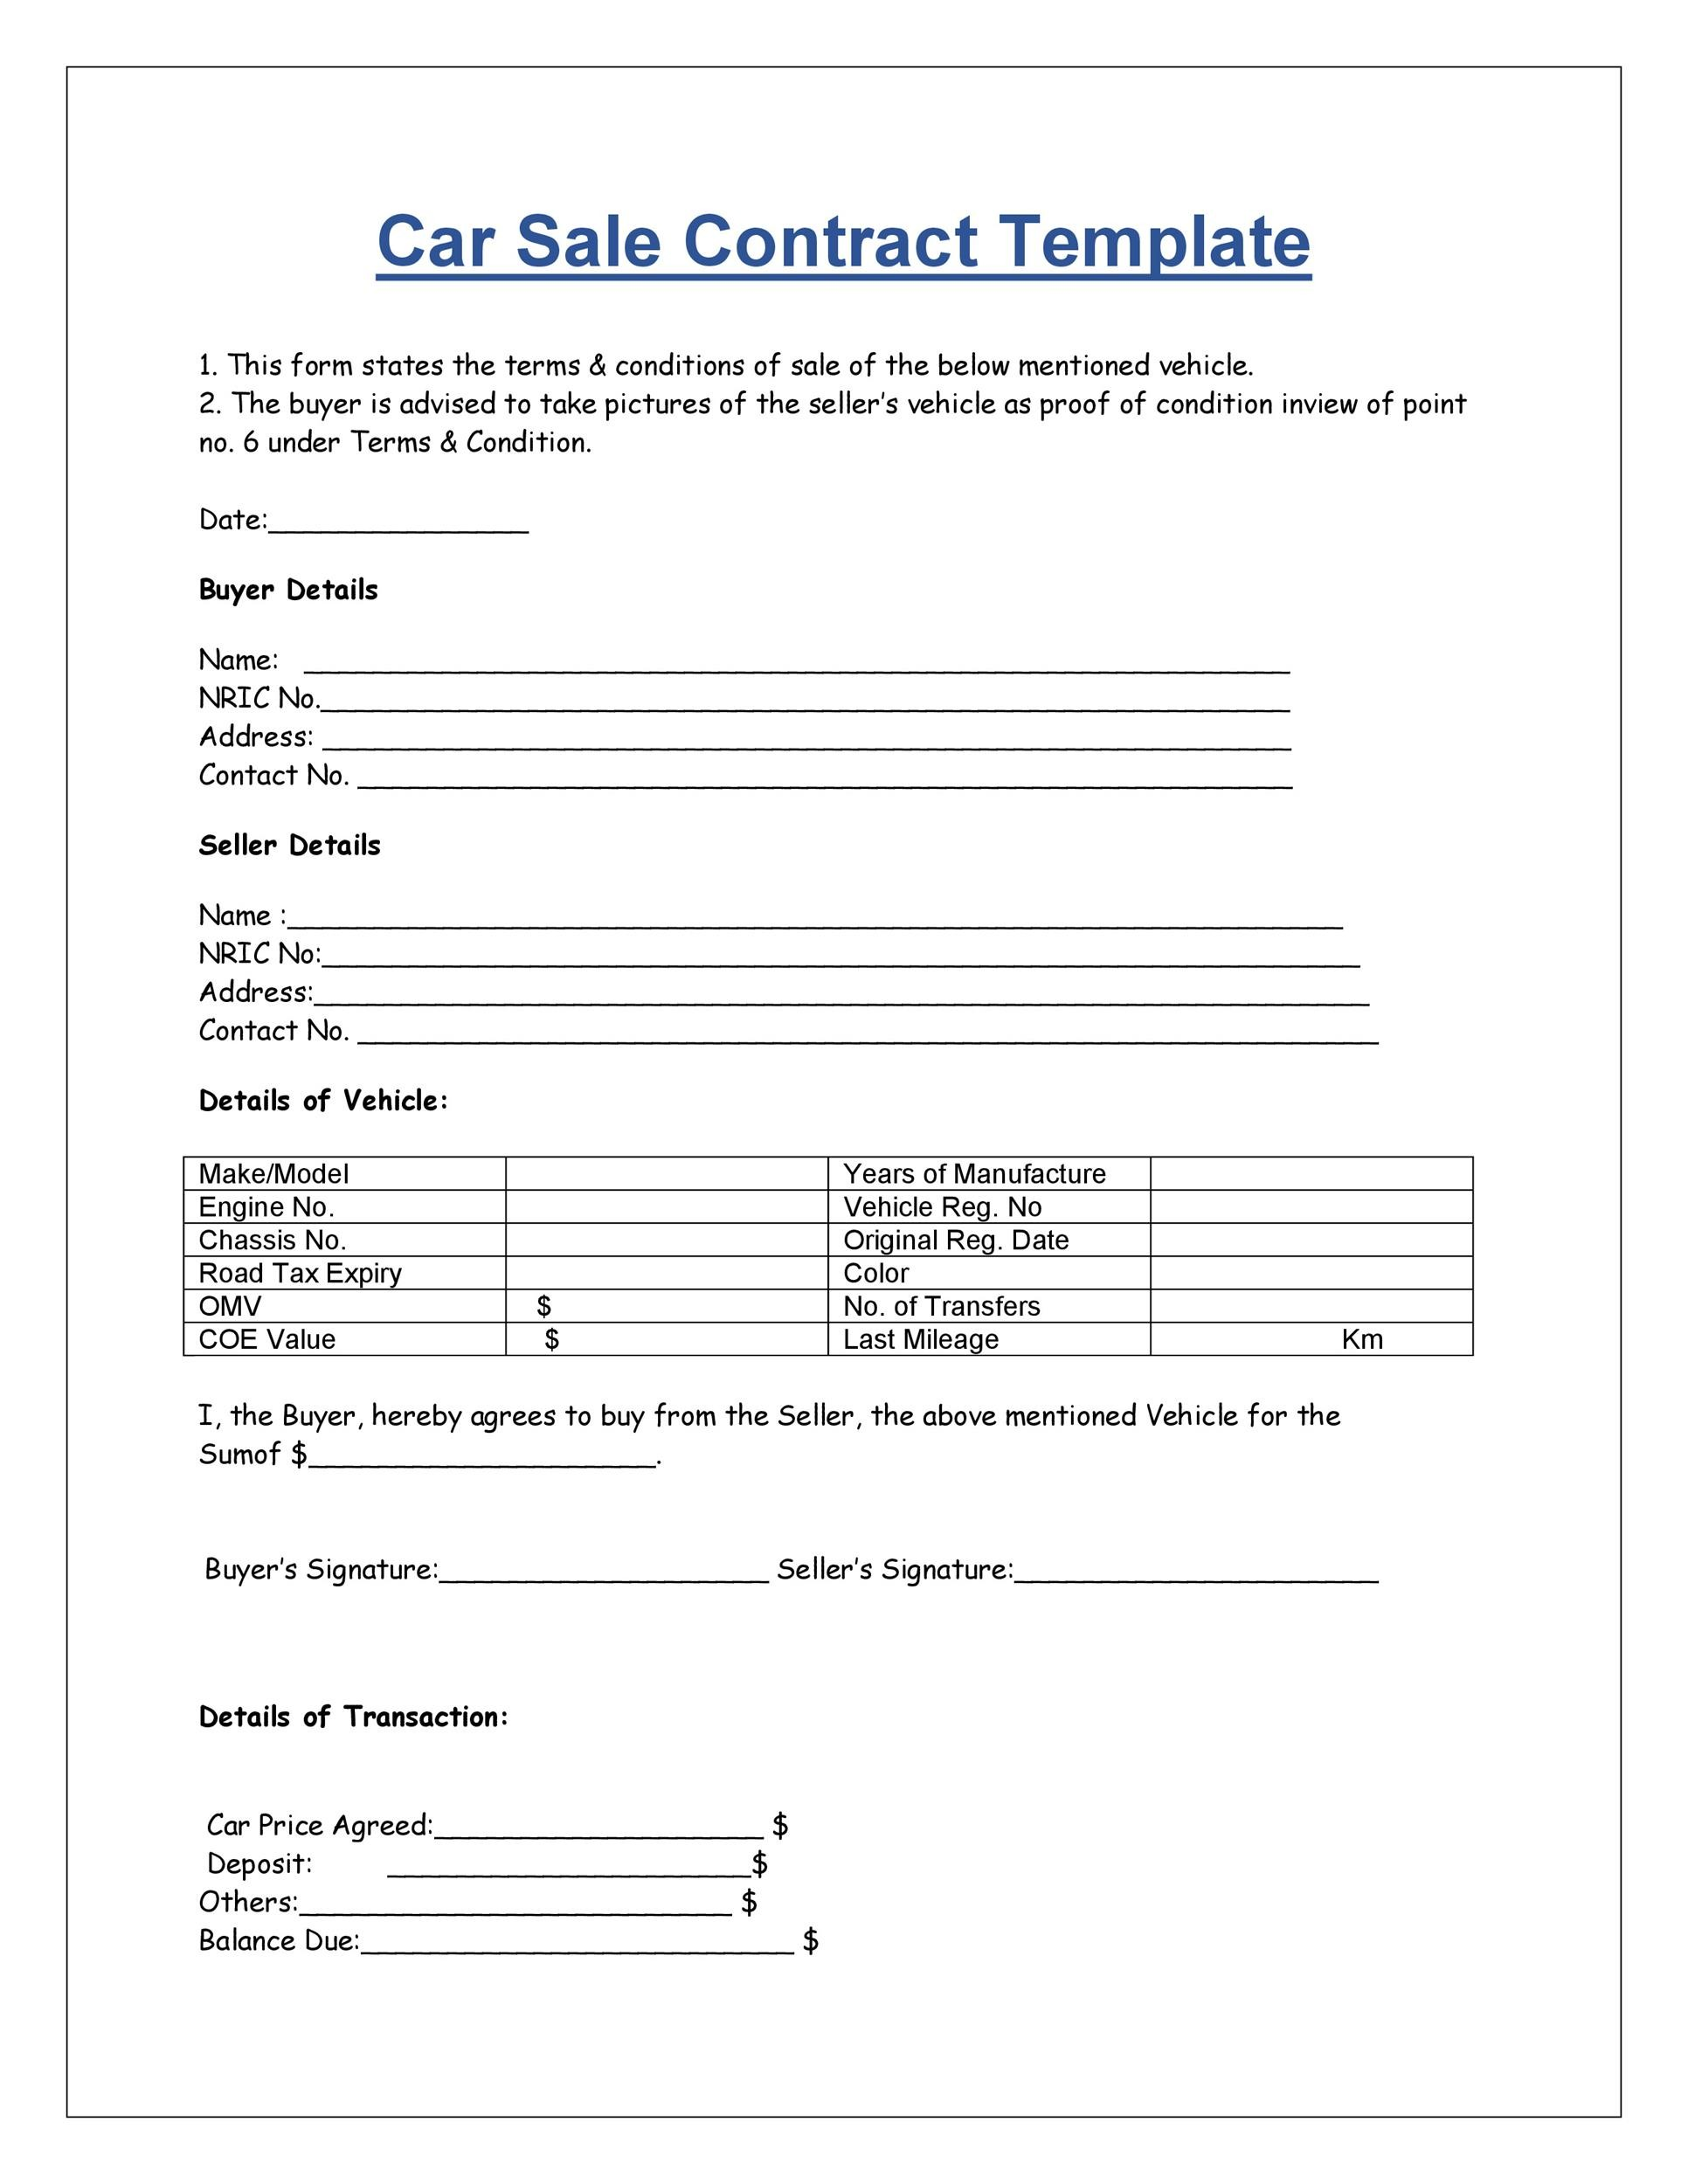 Vehicle Sales Contract With Seller Financing : vehicle, sales, contract, seller, financing, Printable, Vehicle, Purchase, Agreement, Templates, TemplateLab